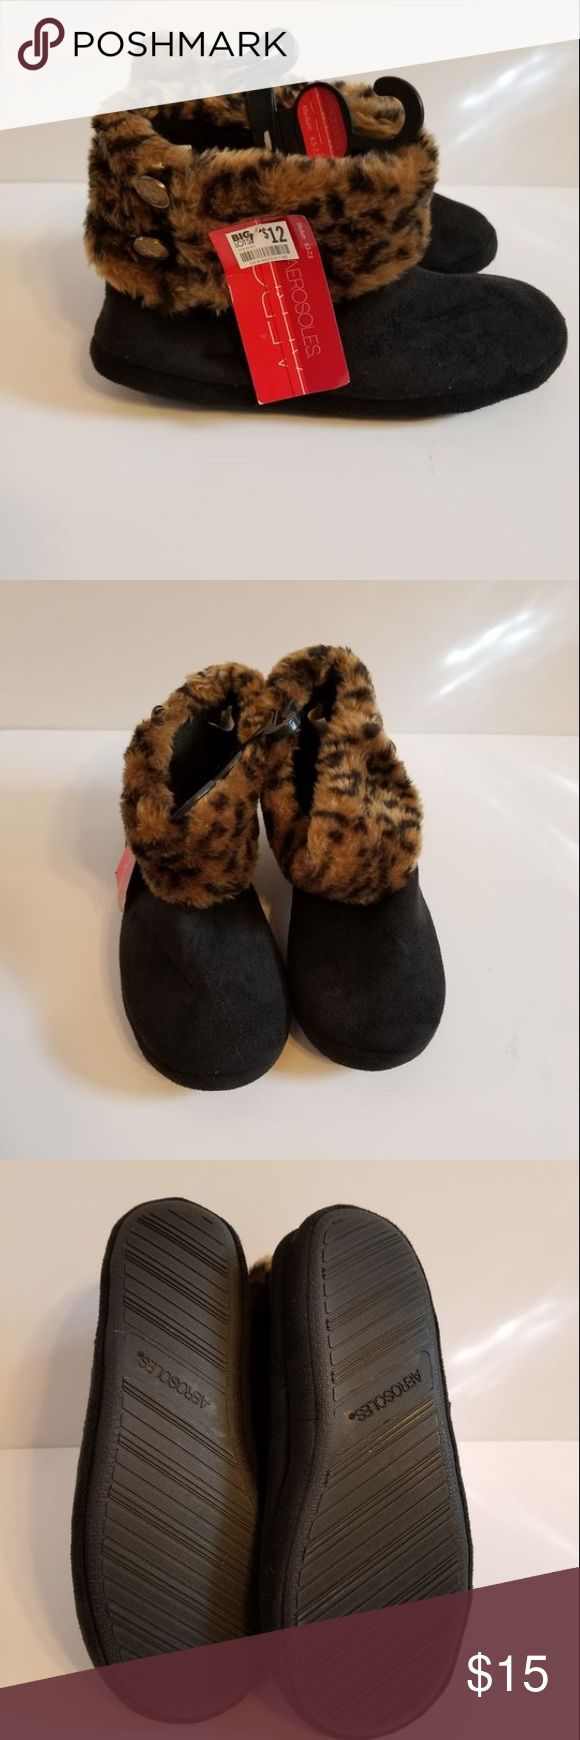 NWT! ❤️ Aerosoles Animal Print House Slippers Here are your comfy house shoes for those cold winter days. These are New with Tags, Size Medium (6.5-7.5). AEROSOLES Shoes Slippers